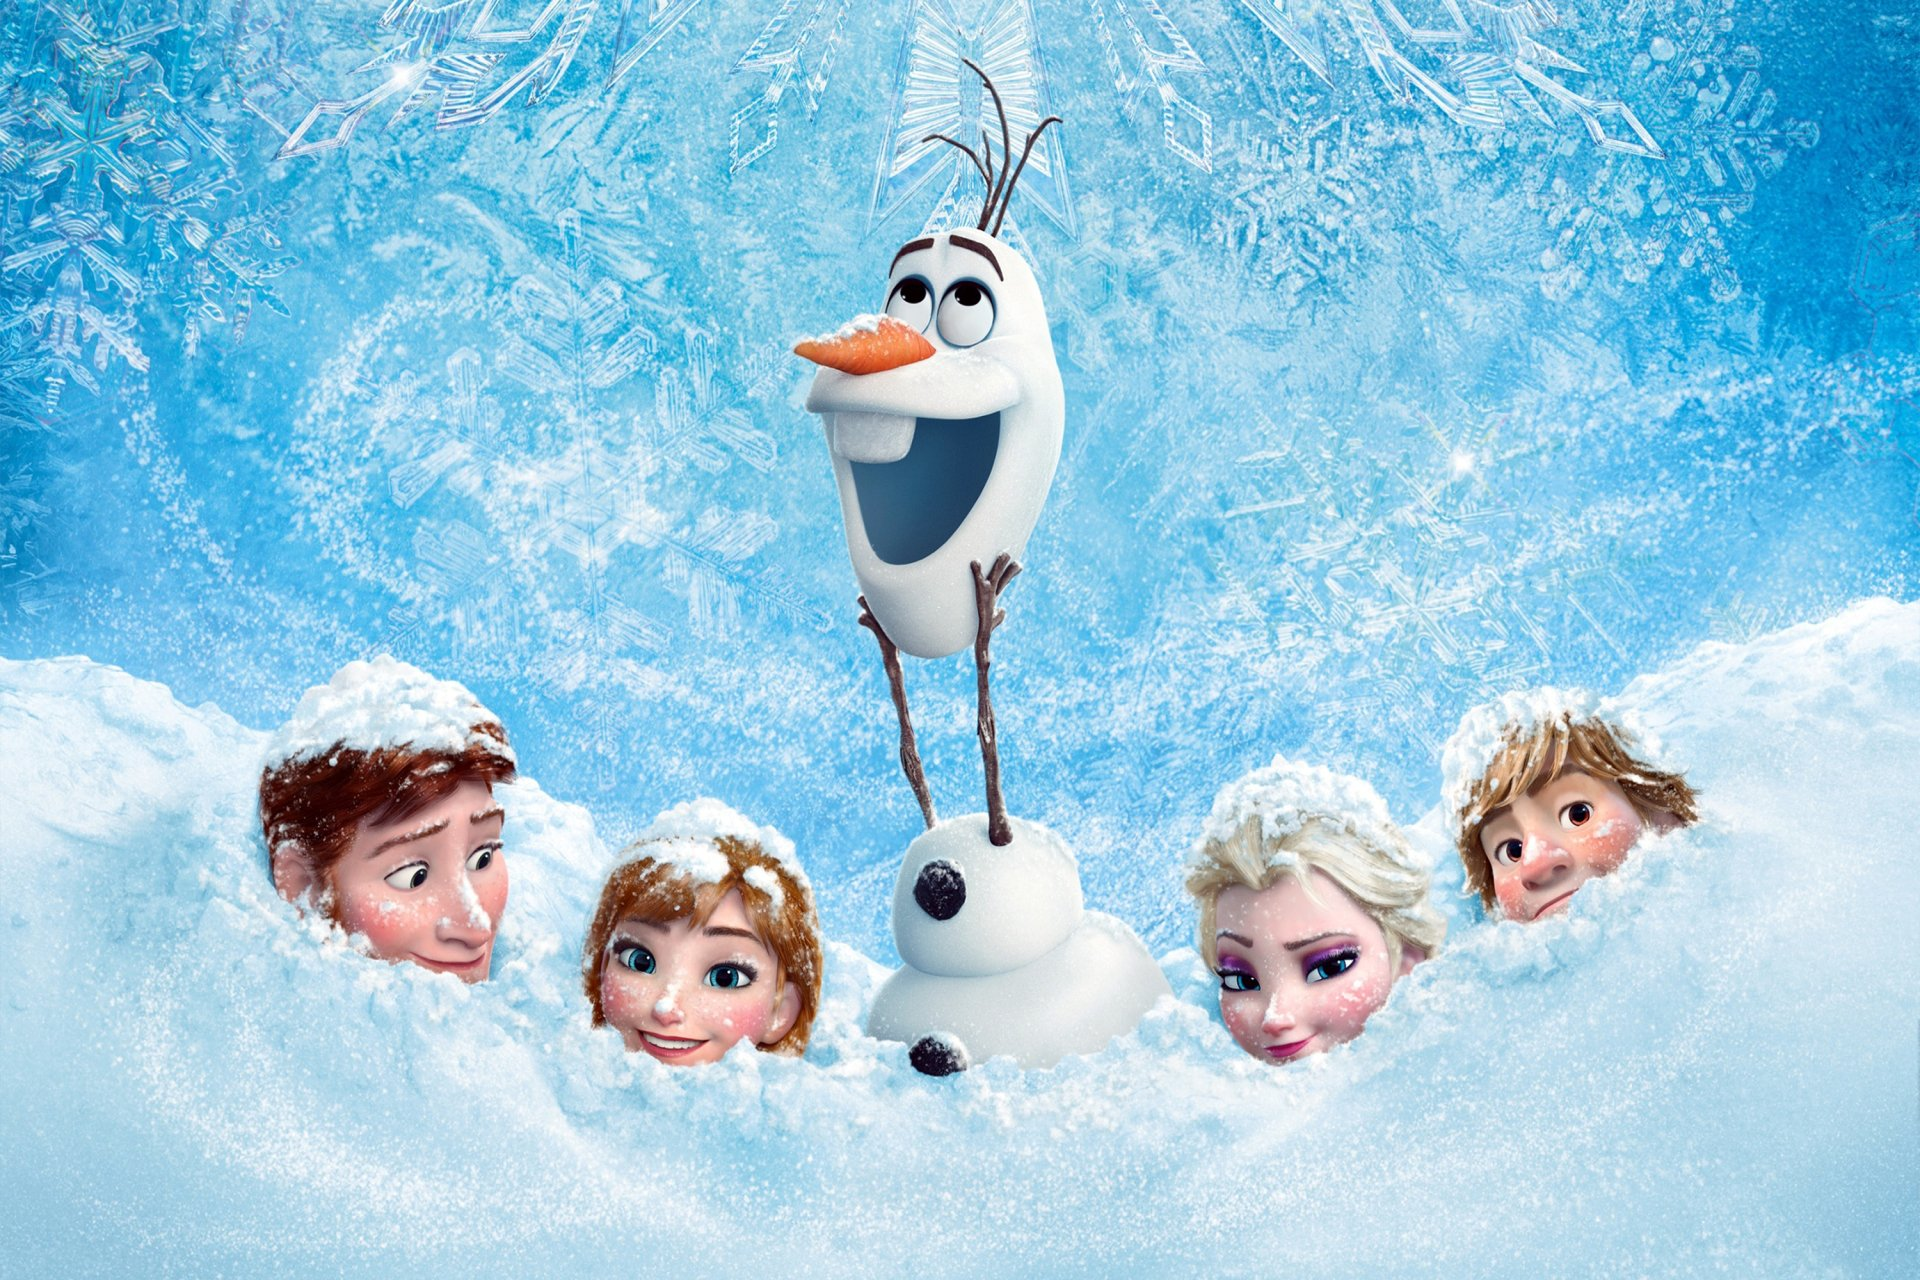 Movie - Frozen  Olaf (Frozen) Elsa (Frozen) Anna (Frozen) Hans (Frozen) Kristoff (Frozen) Wallpaper